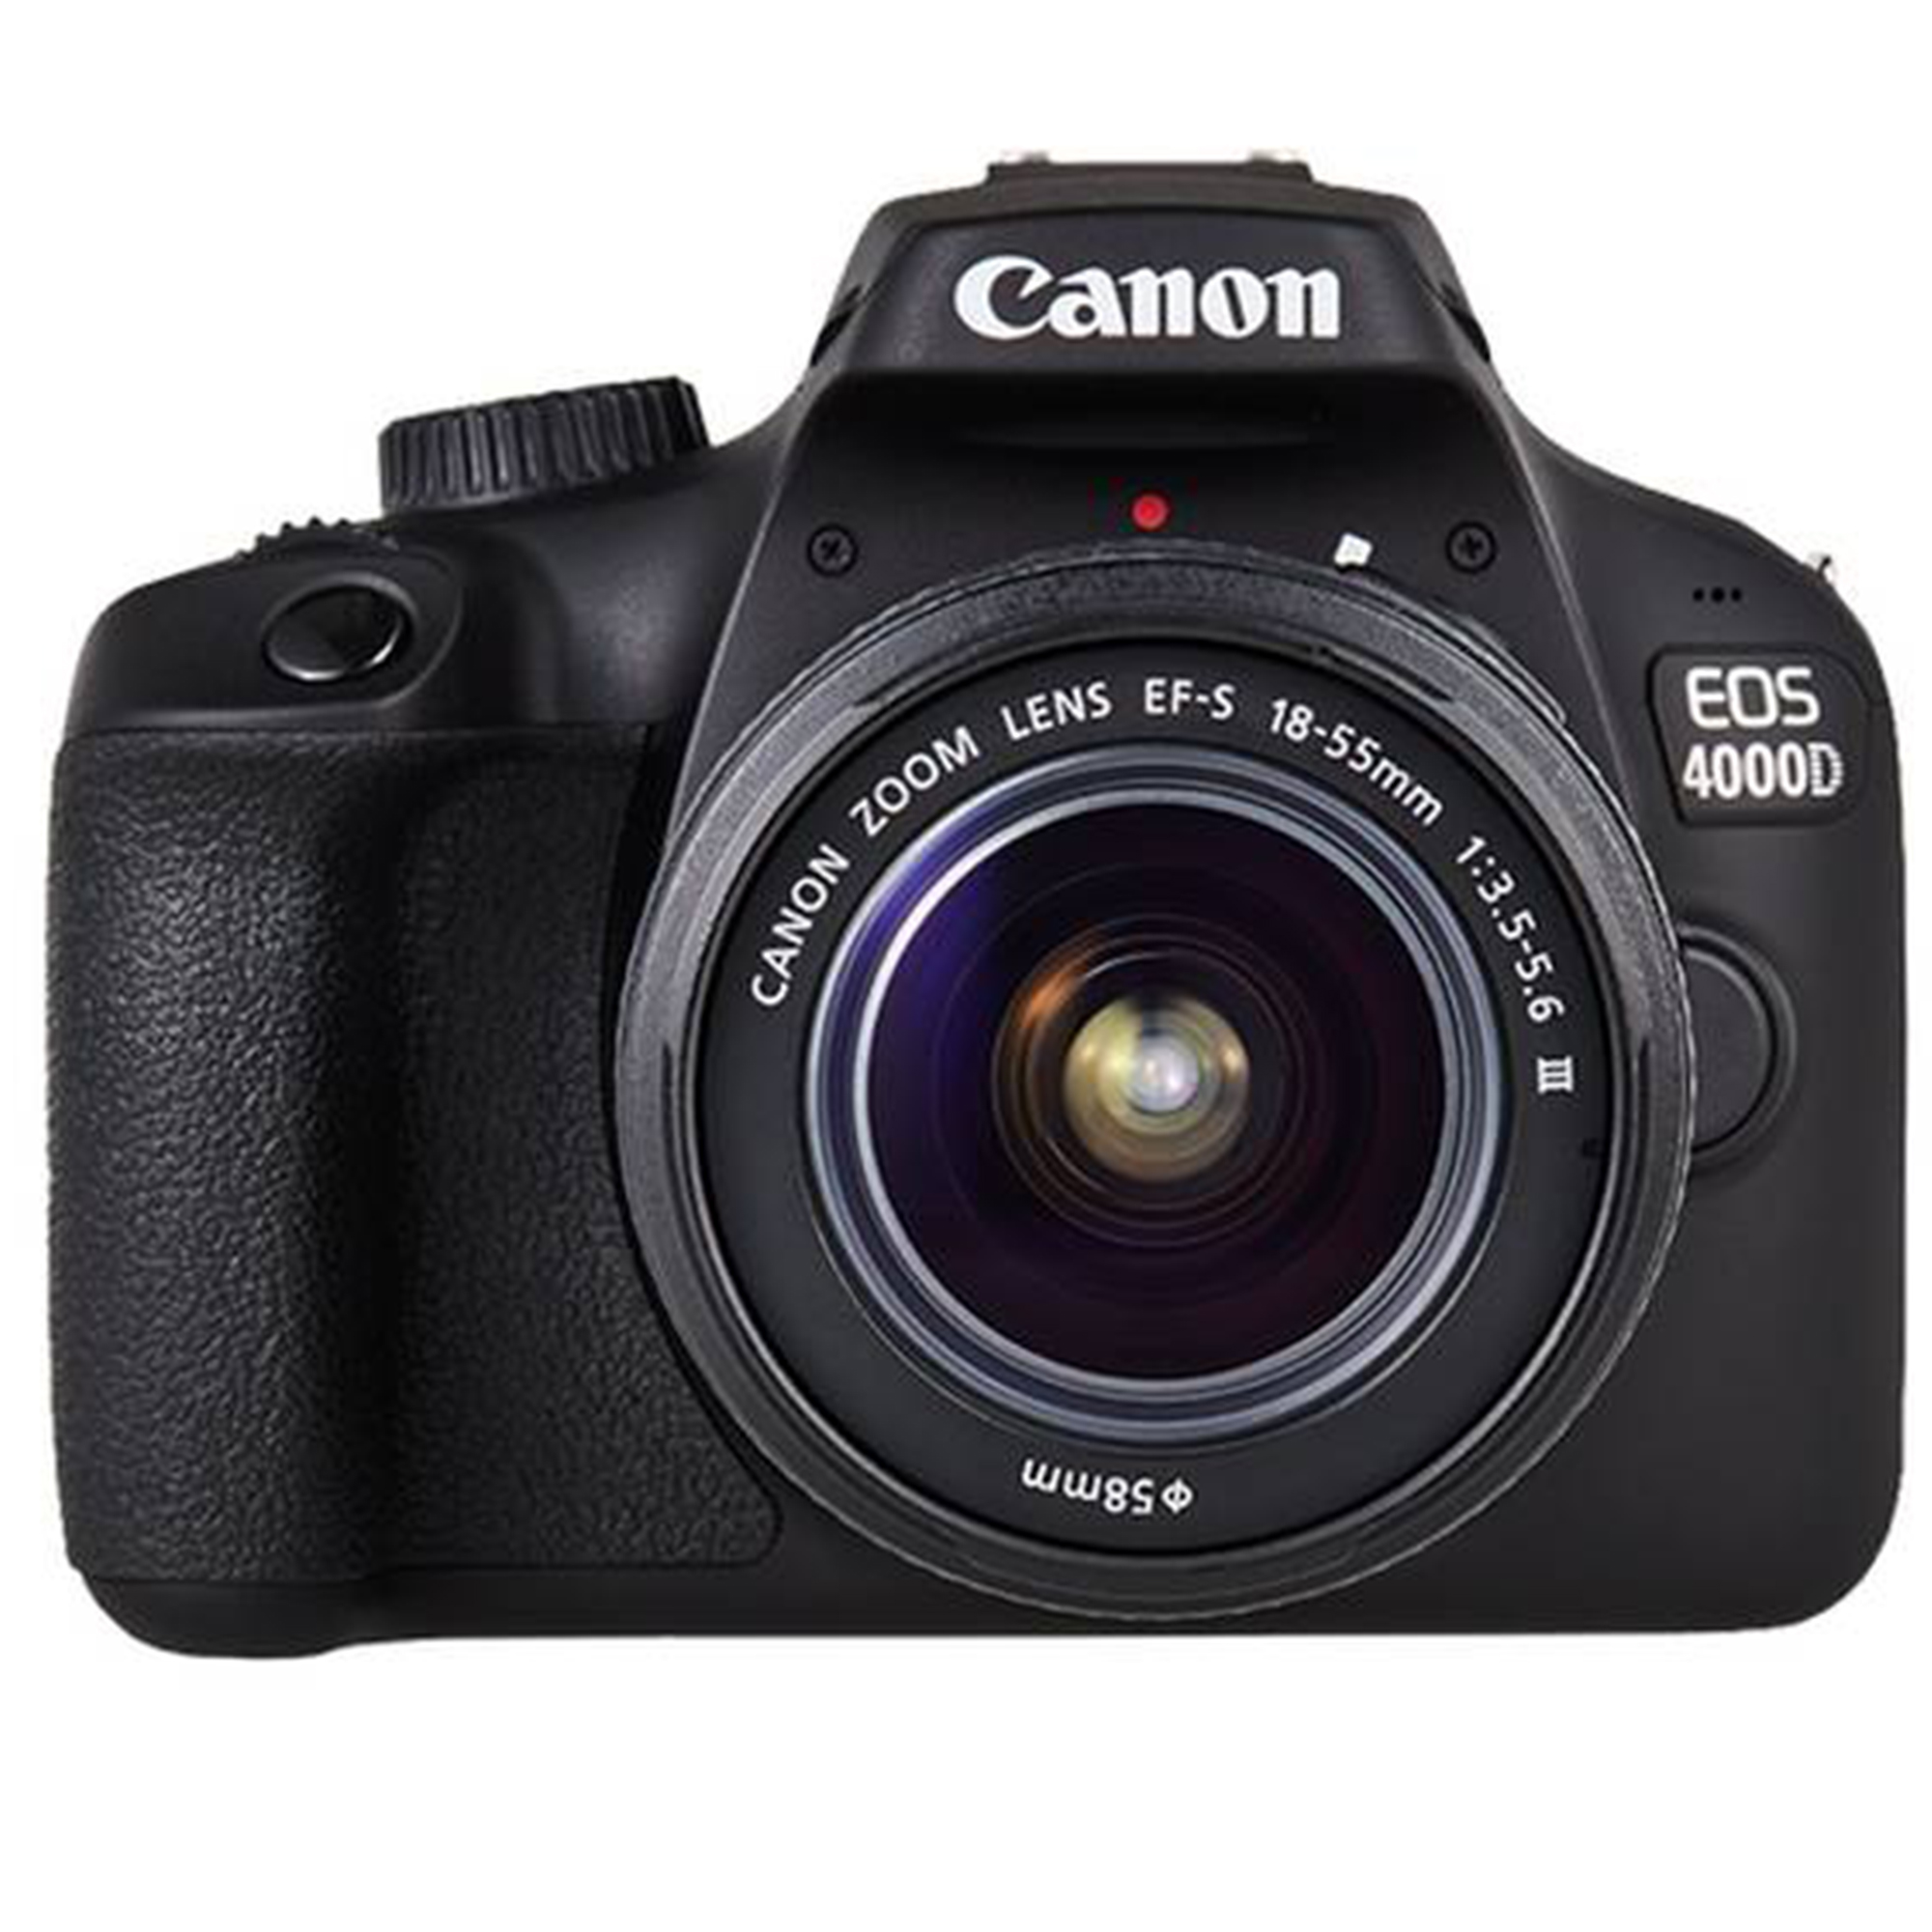 Canon EOS 4000D With 18-55mm Lens IS Kit + Free Gift VANGUARD ULC ULTRA LENS CLEANER , 8 GB Memory Card